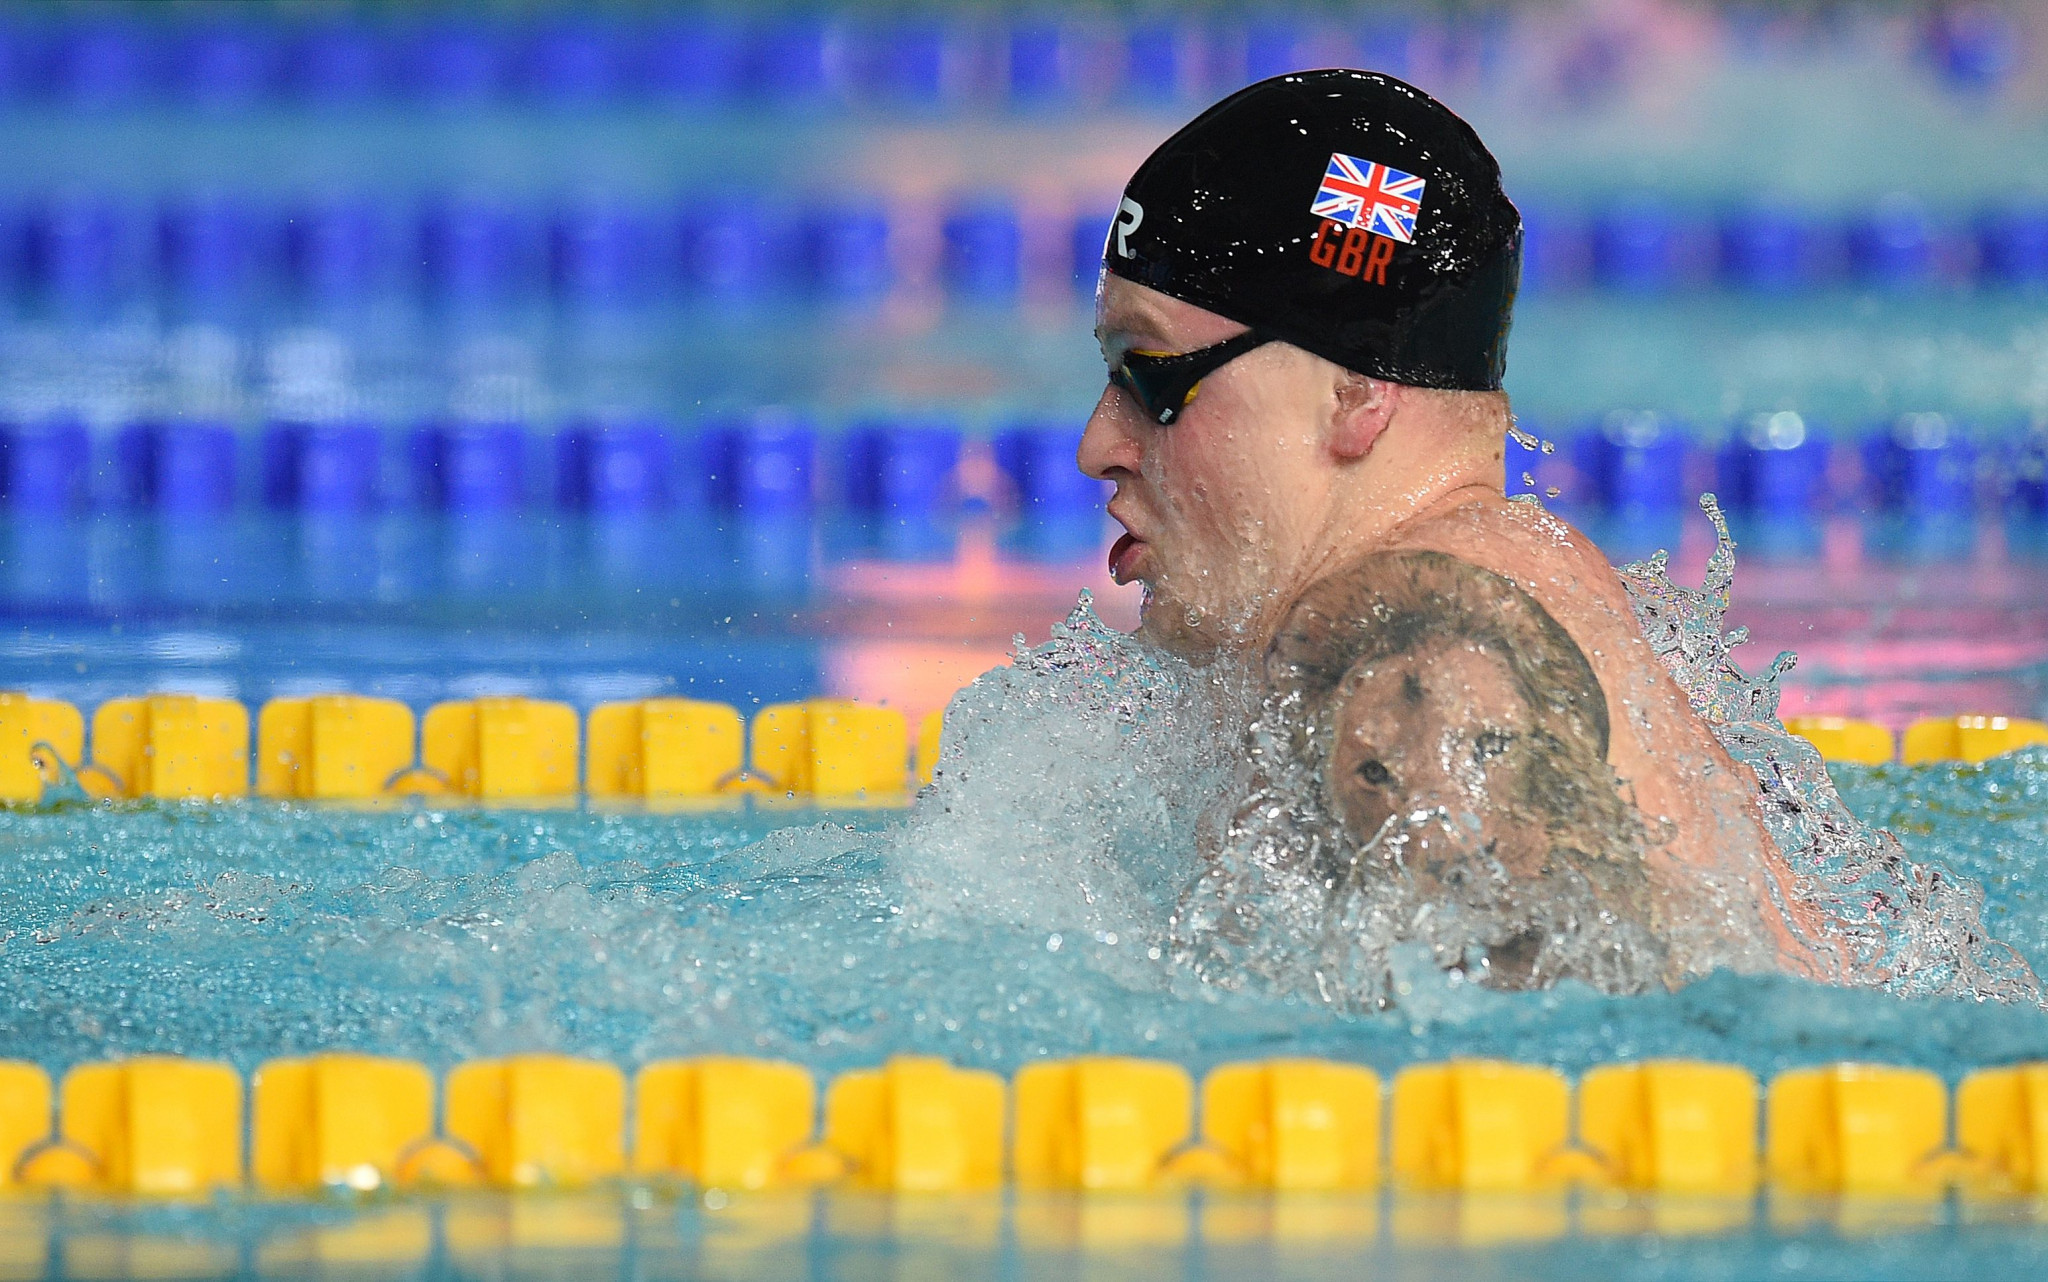 Britain's Adam Peaty is among the high profile athletes expected to take part in Turin ©Getty Images